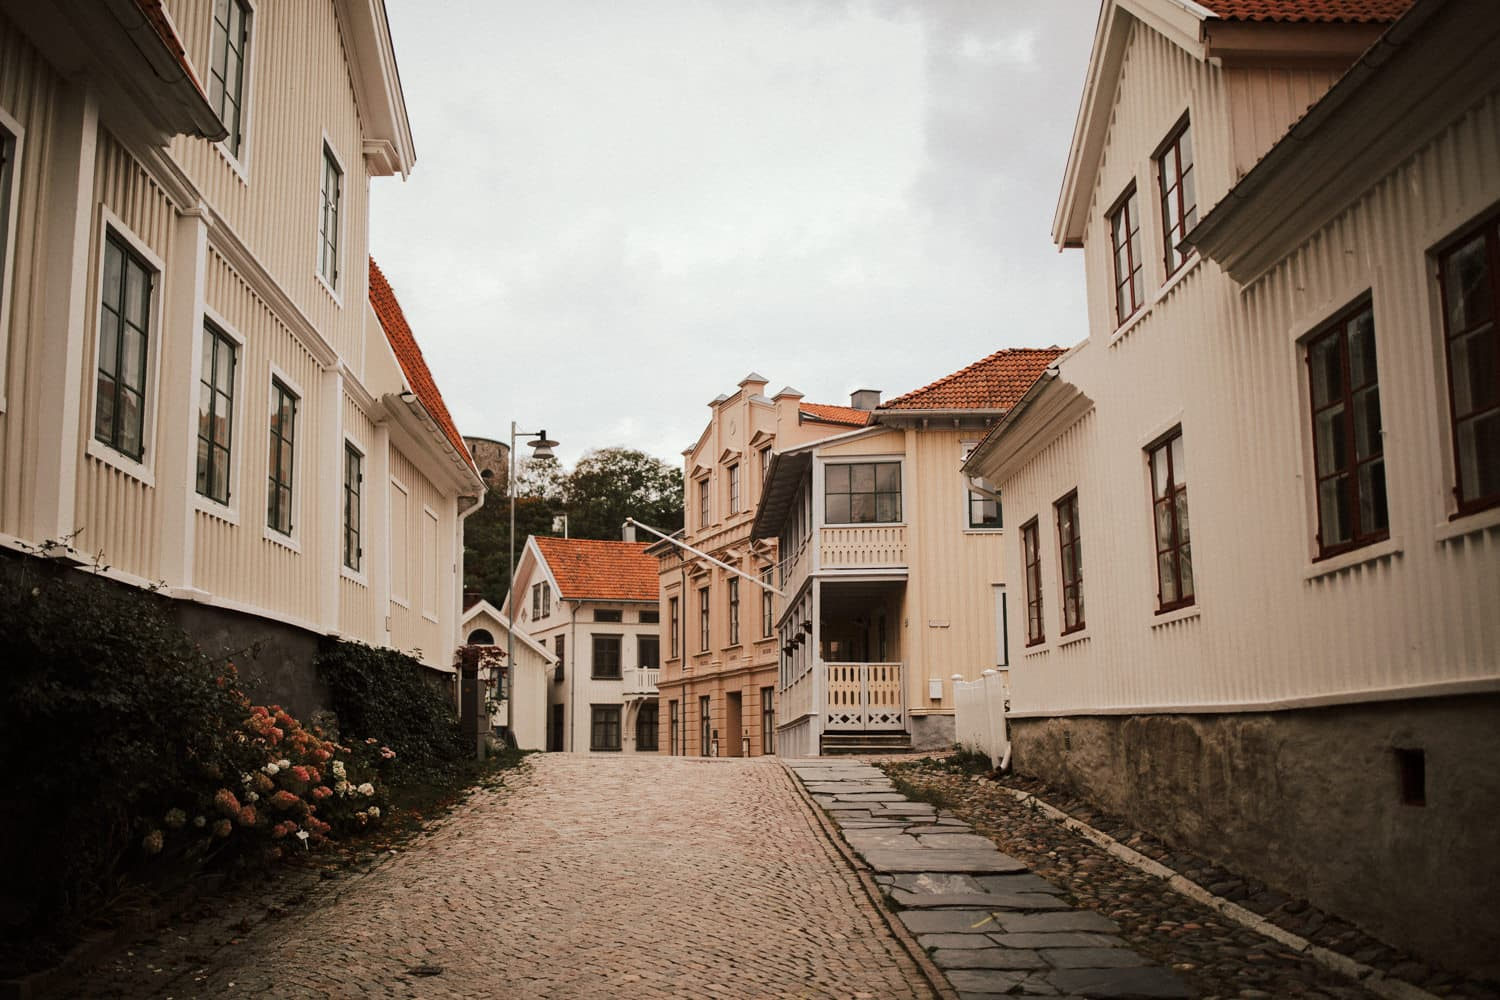 The wedding location features a rough road in the middle of old buildings.